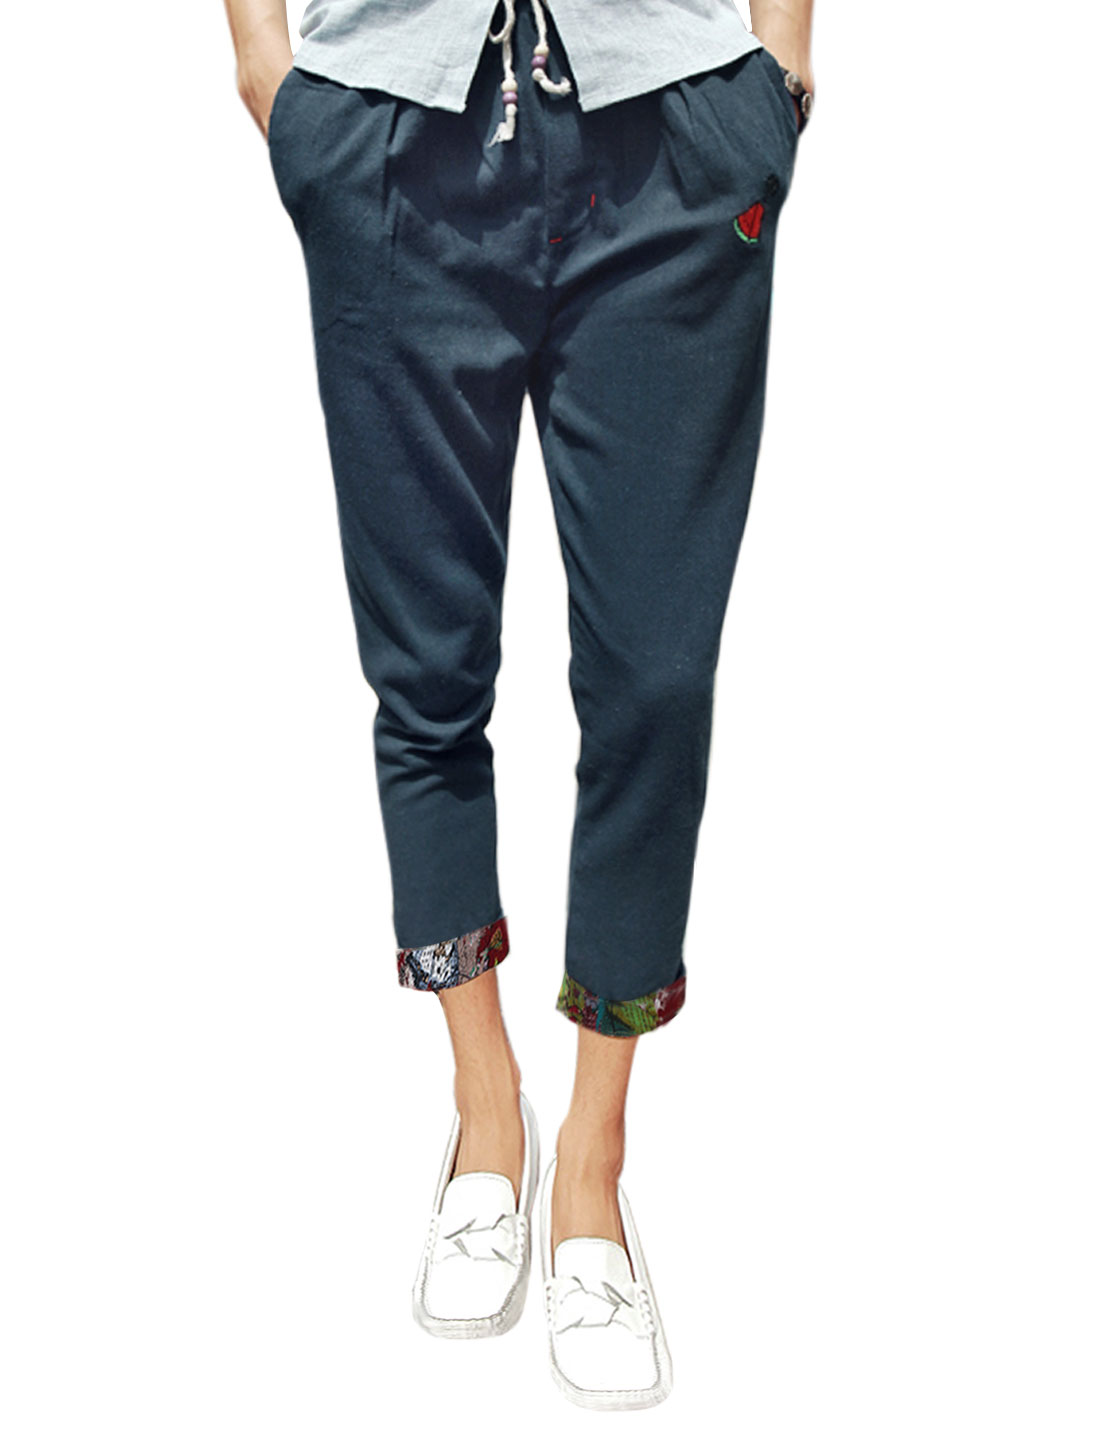 Men Mid Rise Pockets Drawstring Waist Cropped Trousers Navy Blues W30